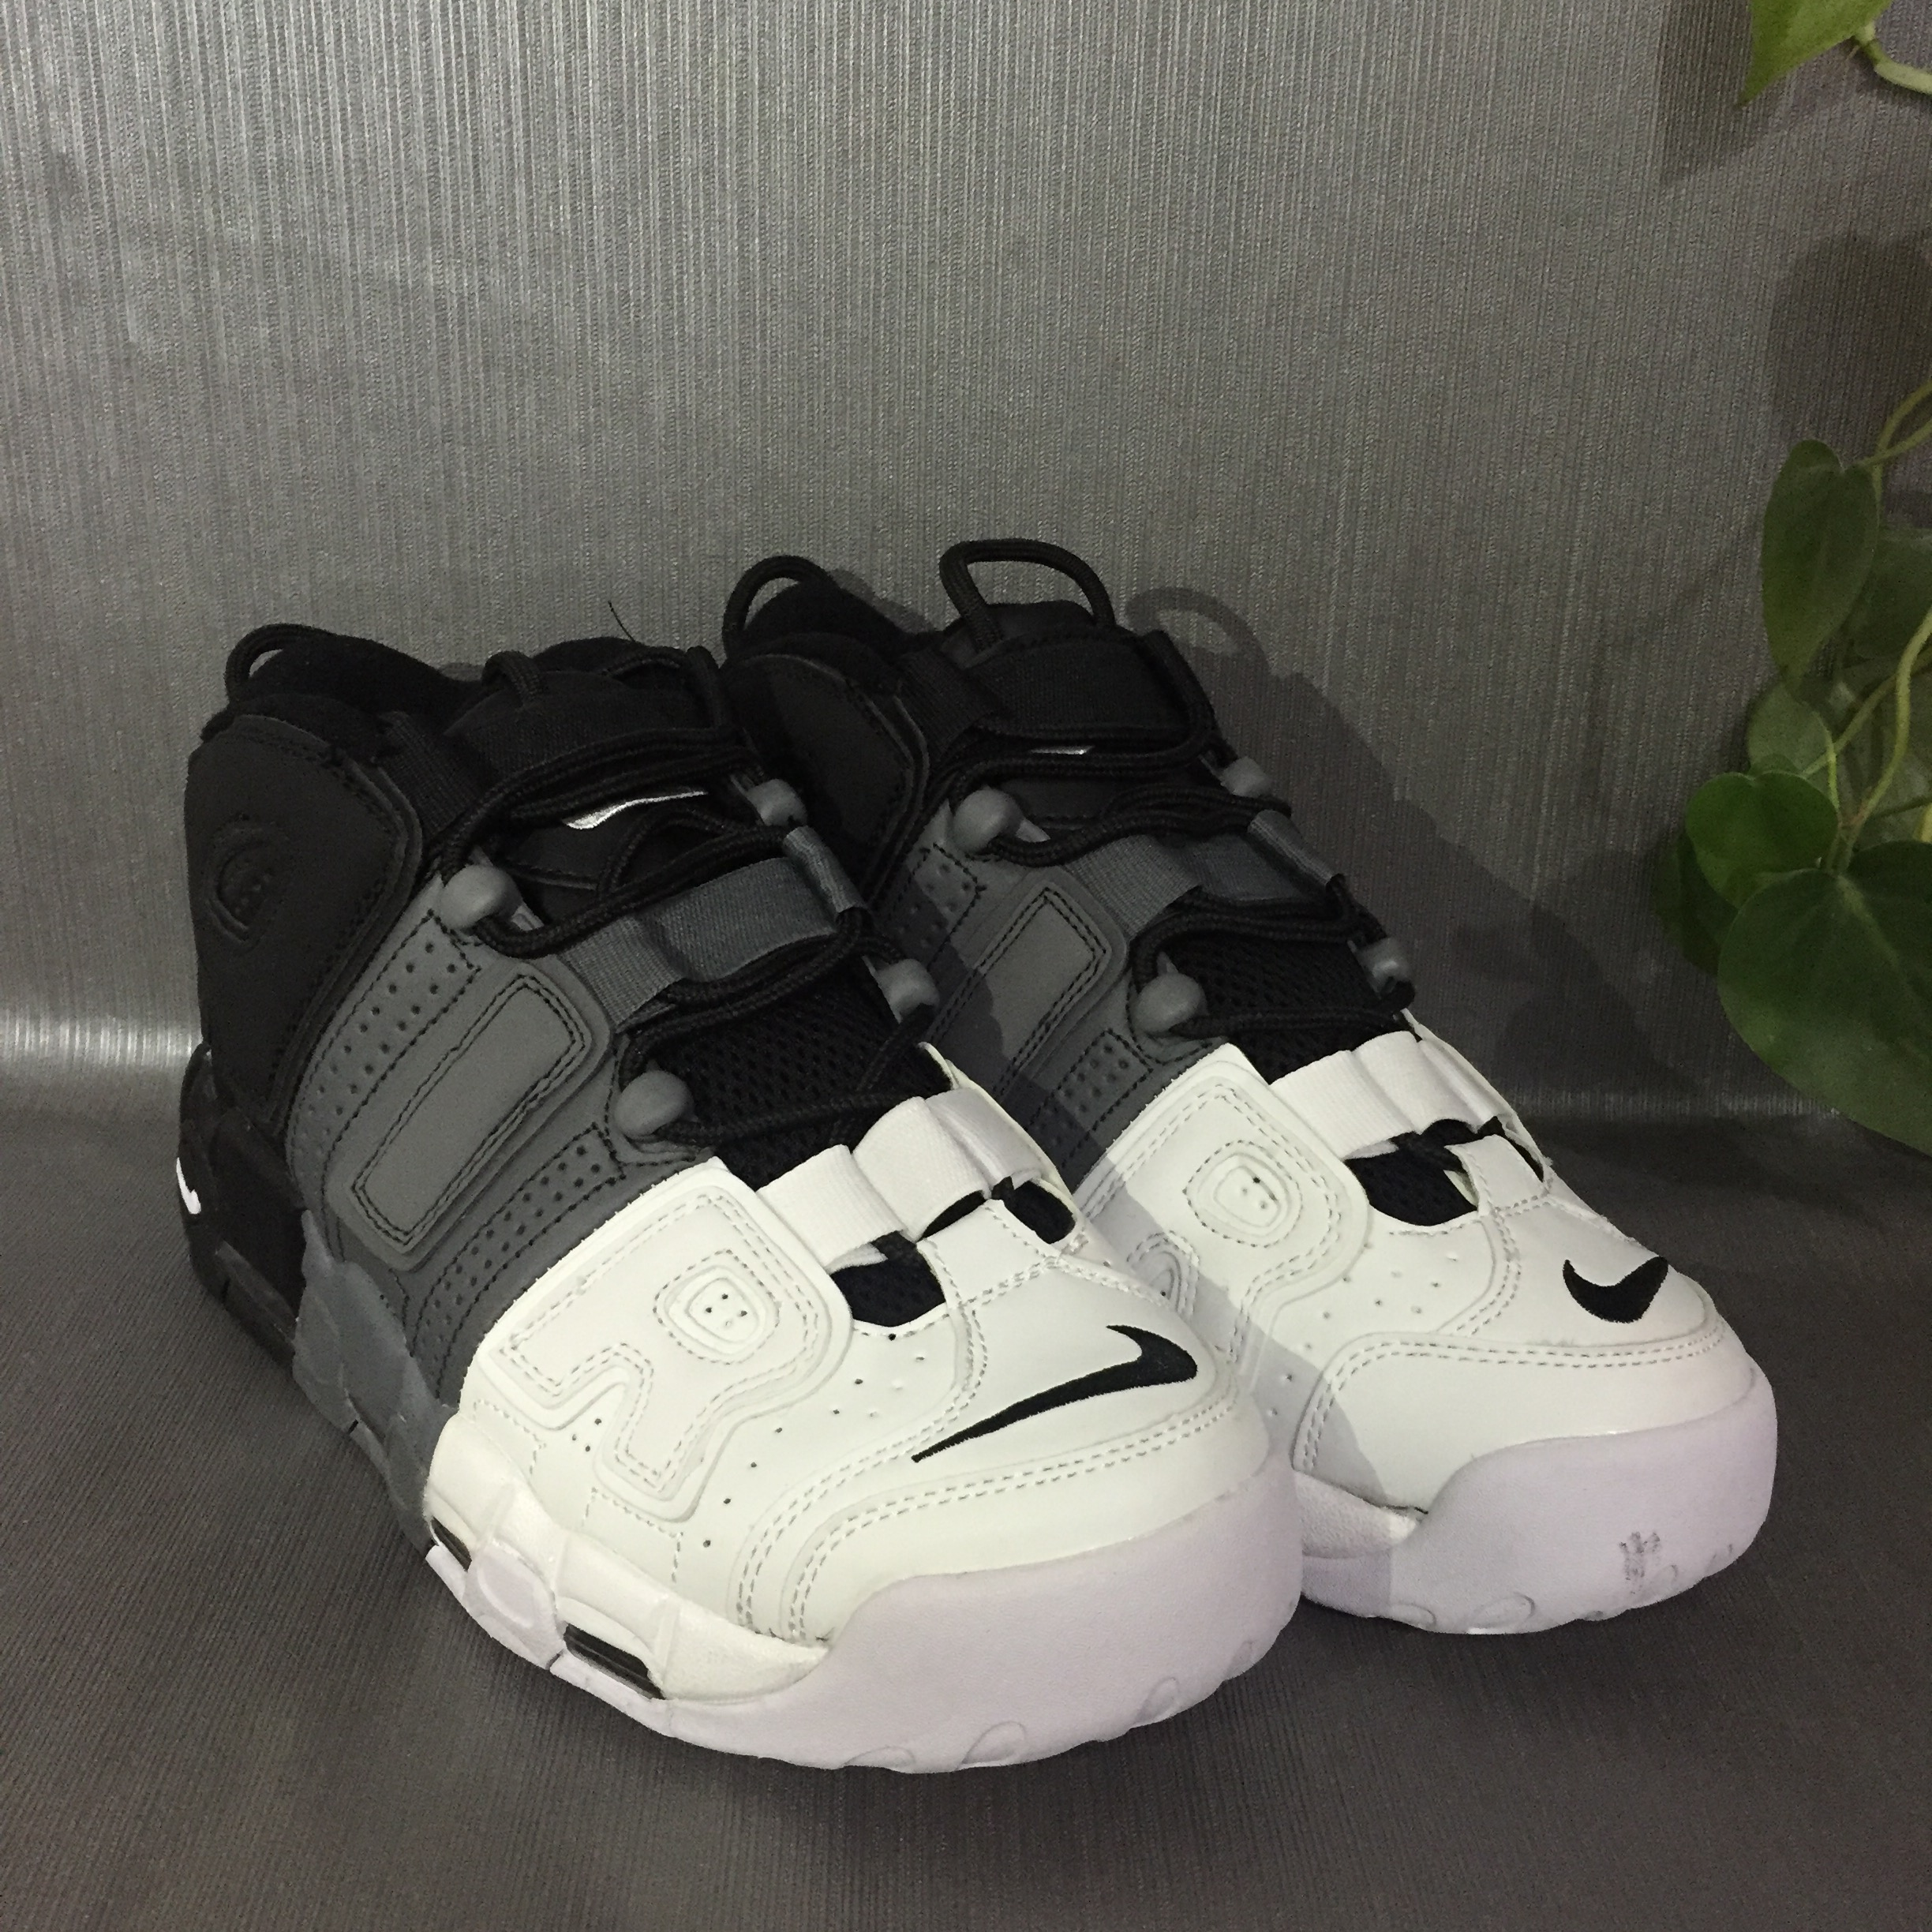 competitive price 26890 43bff Womens Mens Shoes,Nike Air Max Shoes,Air More Uptempo Womens